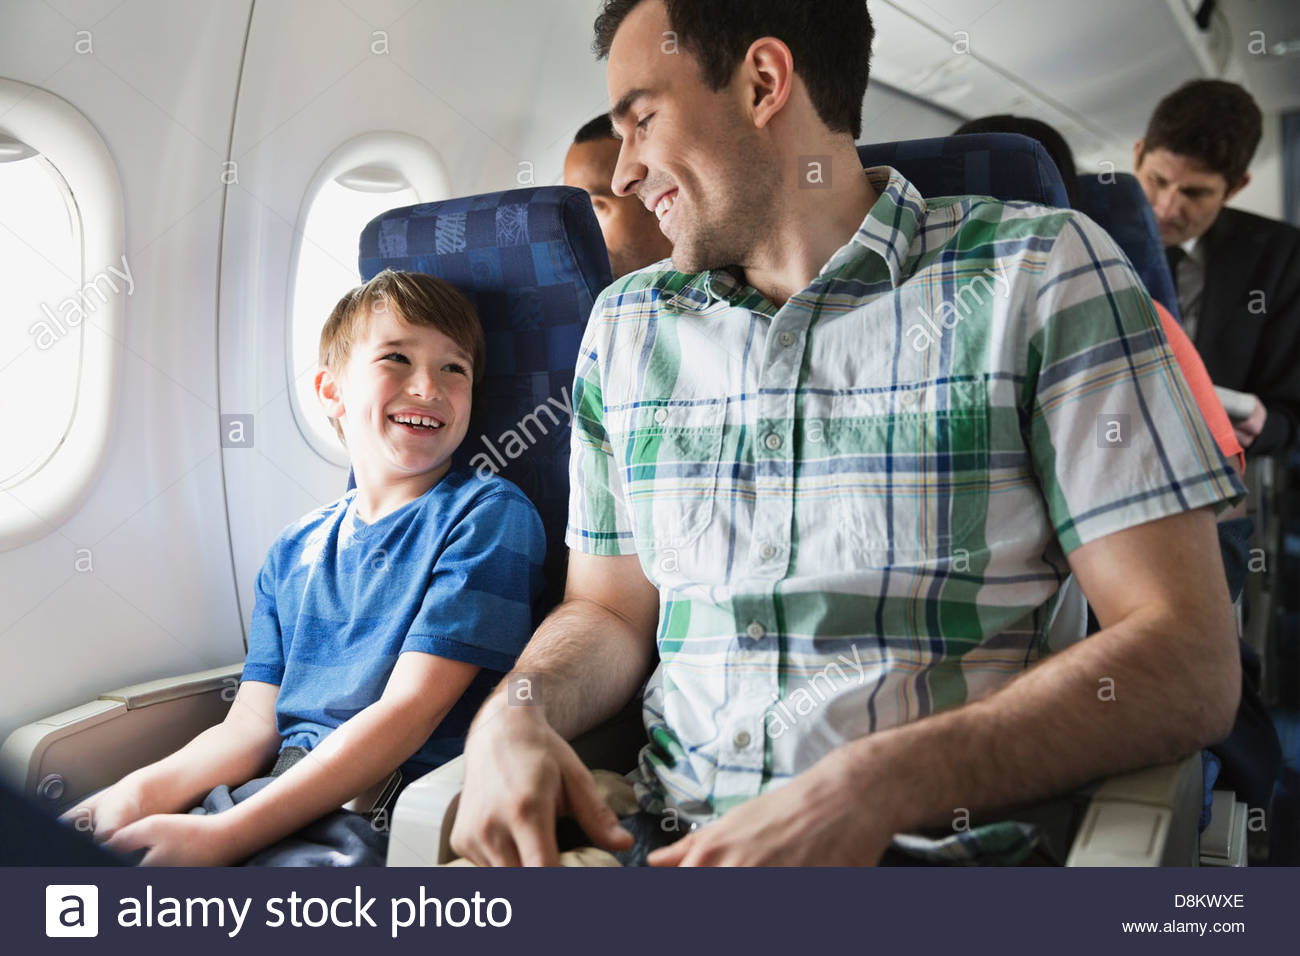 Smiling father and son traveling in airplane - Stock Image